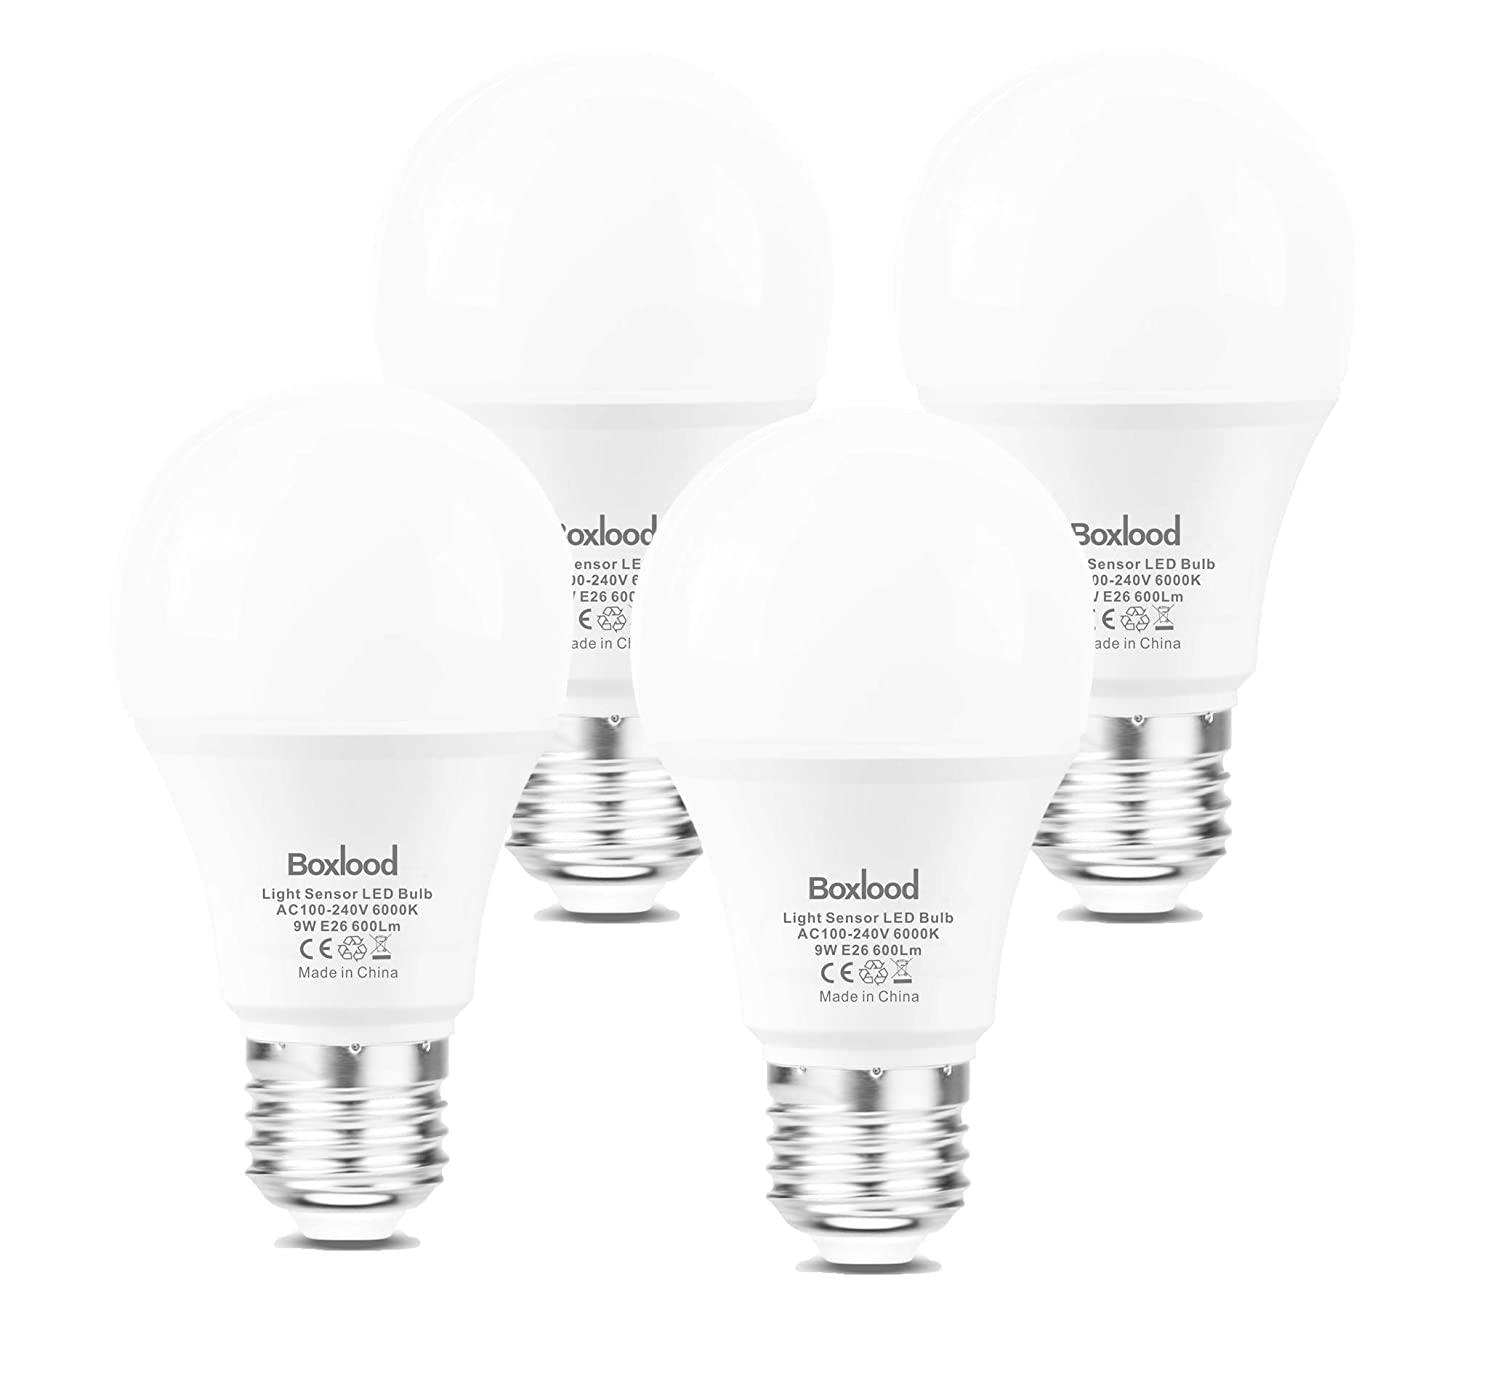 Dusk to Dawn Light Bulbs, E26, 60W Equivalent, AC100-240V, 6000K Cool White Auto On/Off Indoor/Outdoor Sensor LED Bulb by Boxlood (4 Pack)